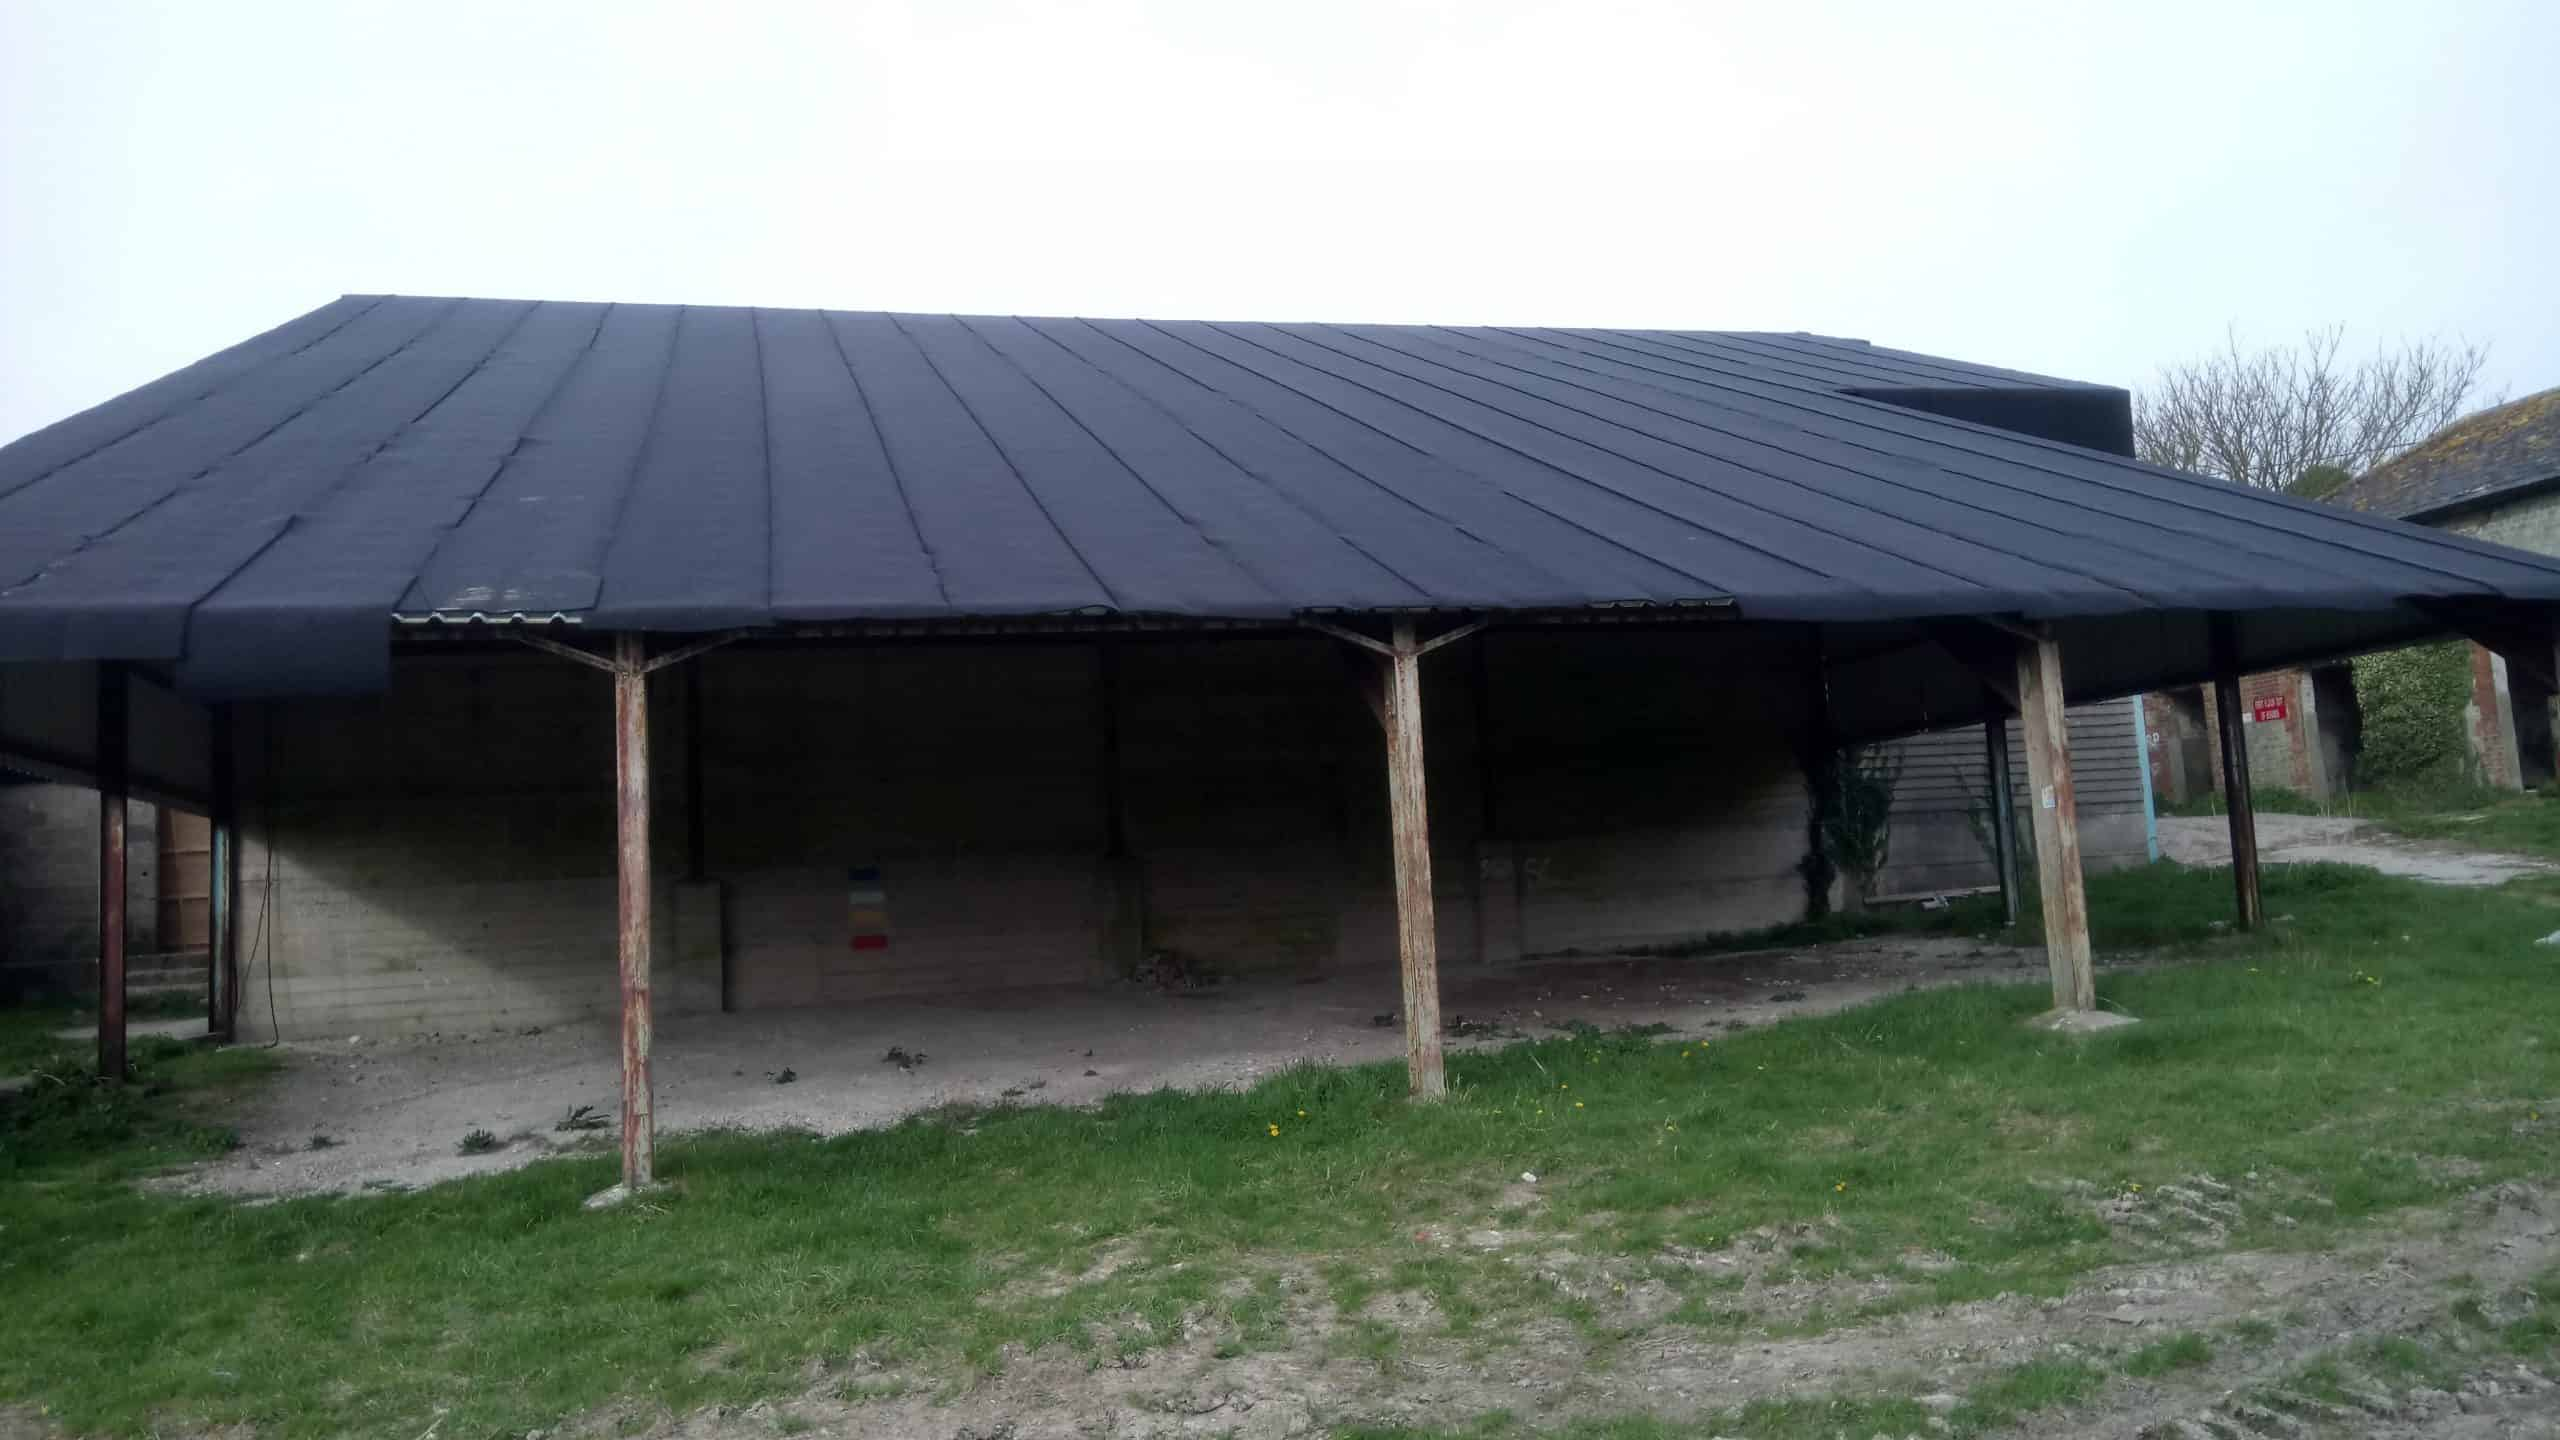 Silent Roof installed on barn used for Sam Mendes '1917' trenches scene shoot